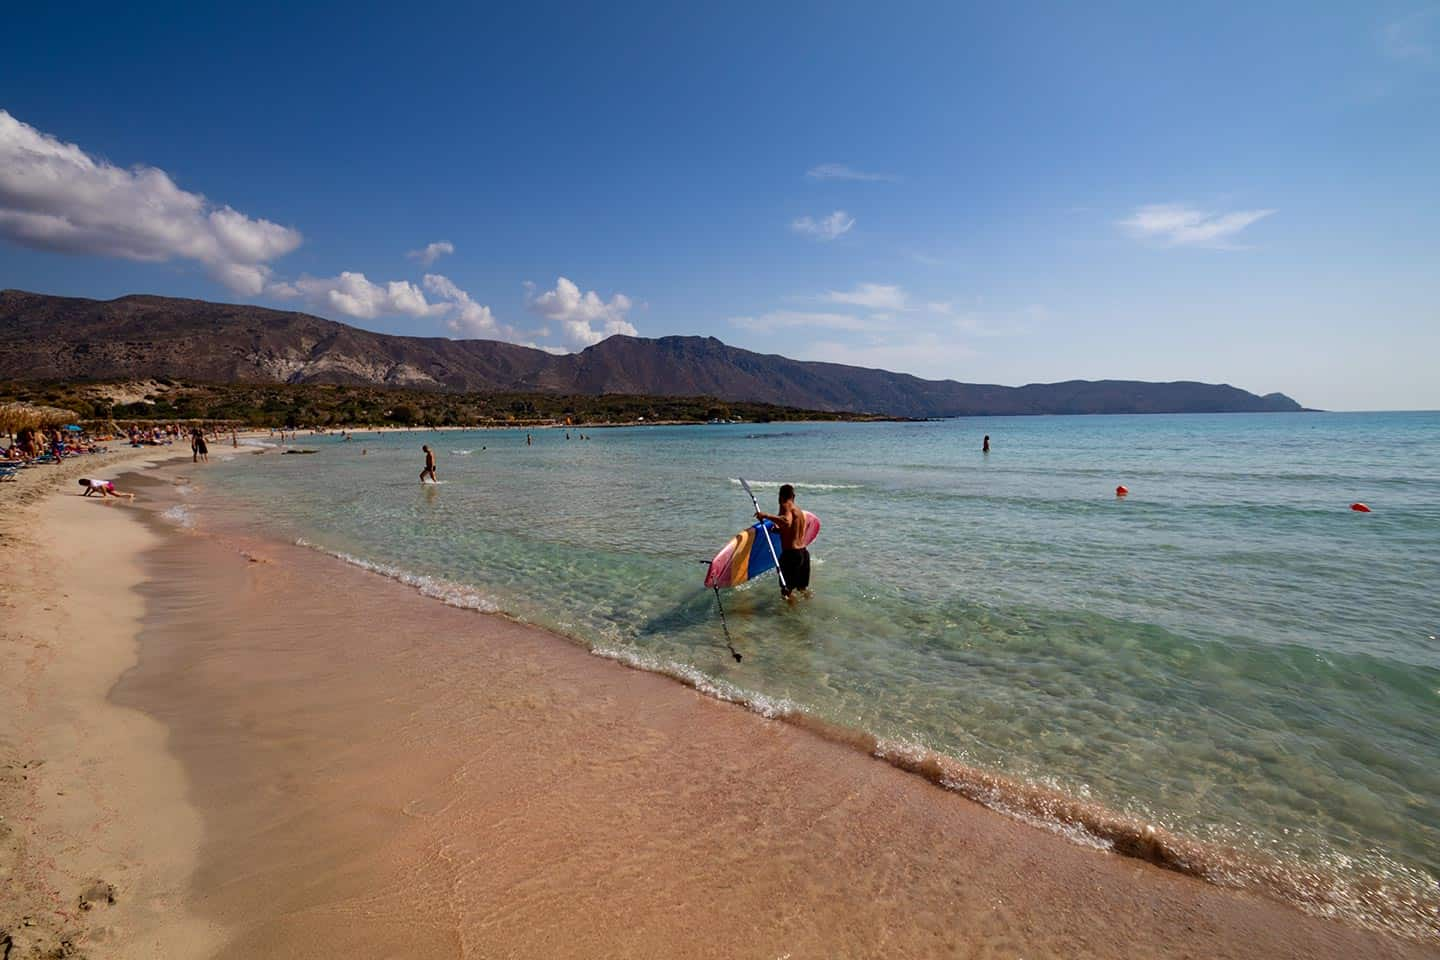 Image of a stand-up paddleboarder at Elafonissi Beach on Crete